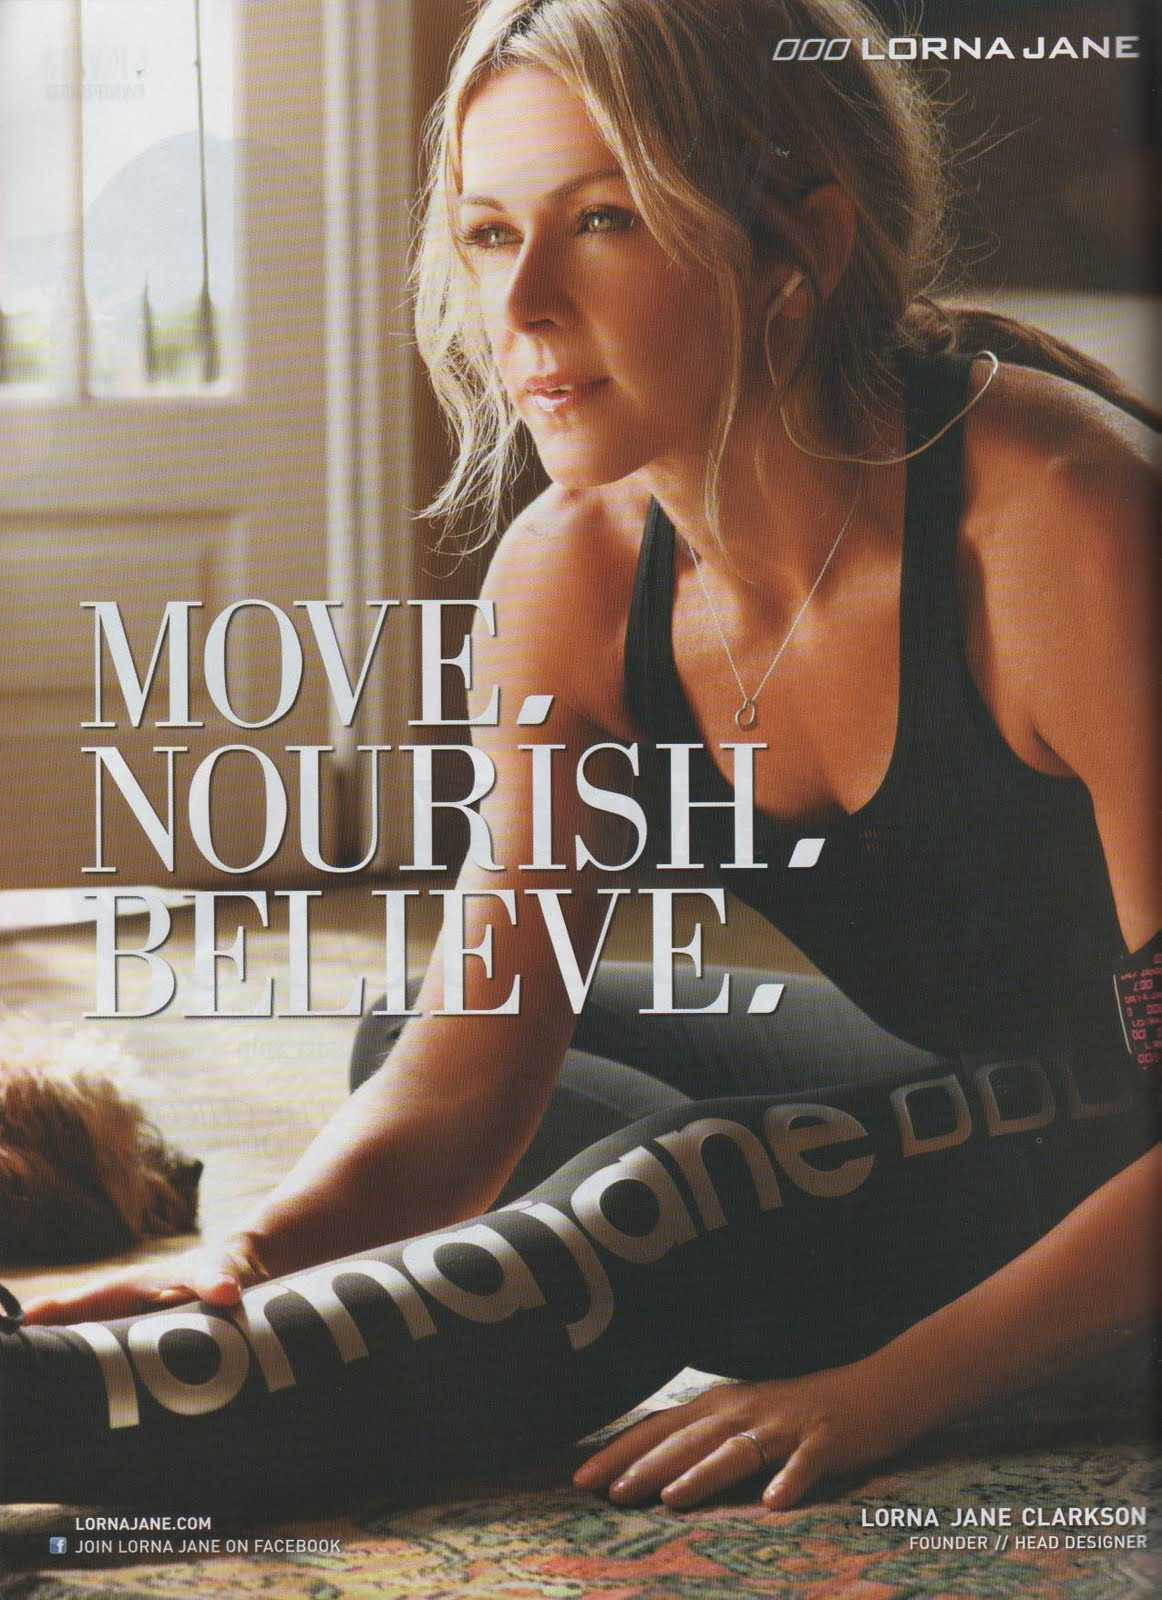 MOVE * NOURISH * BELIEVE